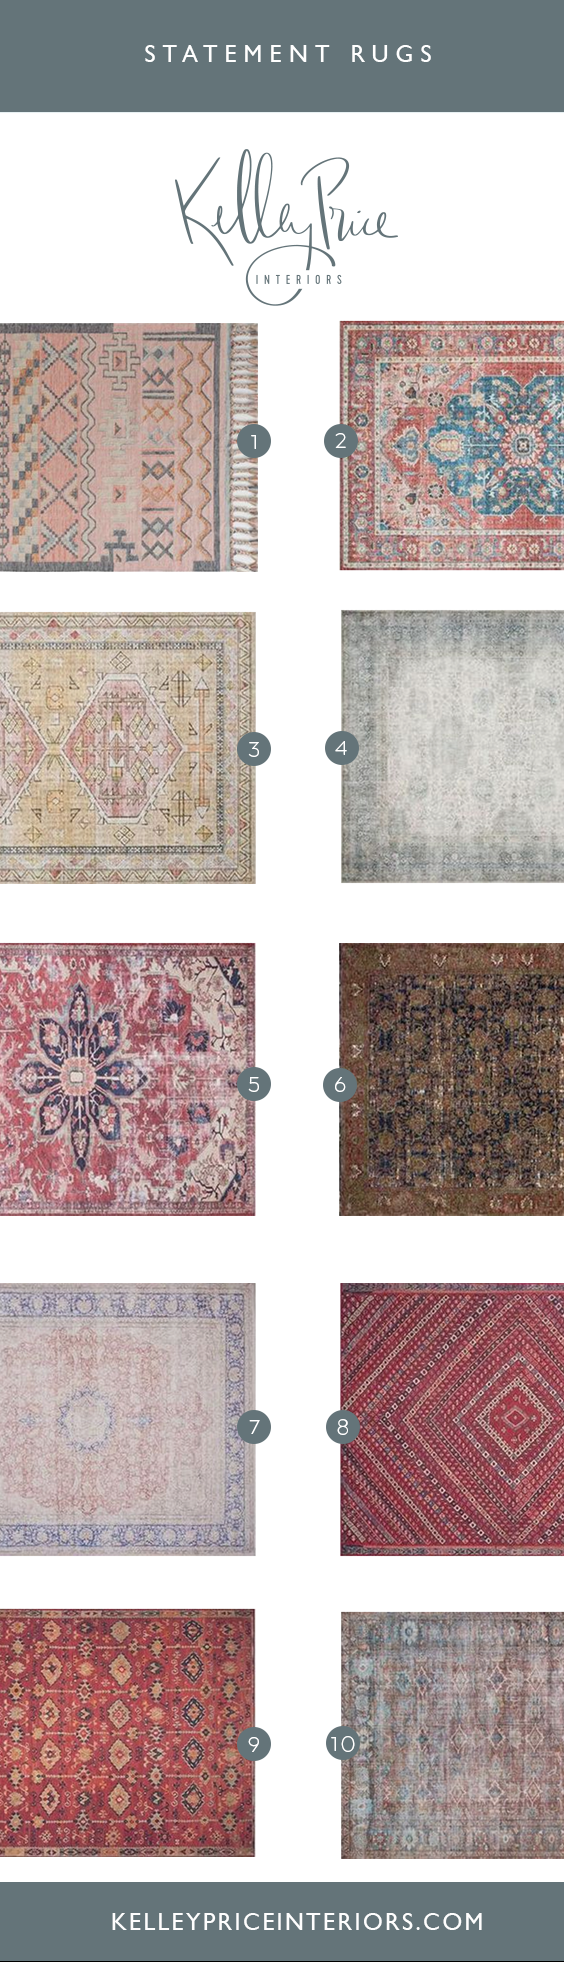 The Best Statement Rugs from Kelley Price Interiors.png